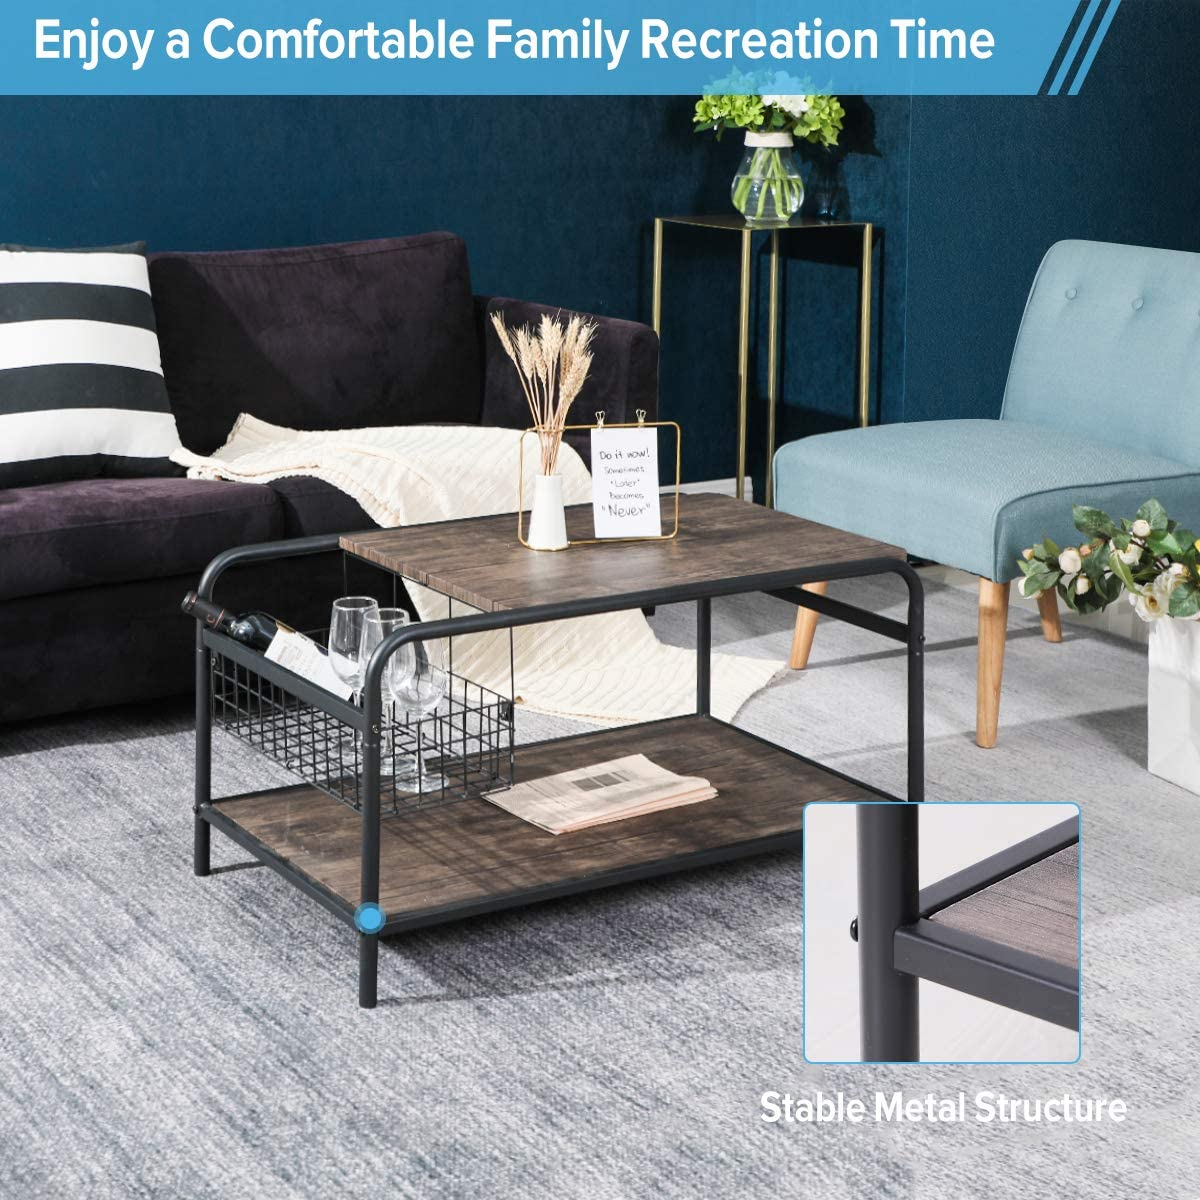 Rustic Coffee Tables with Storage Wood Living Room Tables Industrial Metal Shelf Modern Vintage Sofa Side Tables Cocktail Space Saving Organizer, Walnut Black: Kitchen & Dining